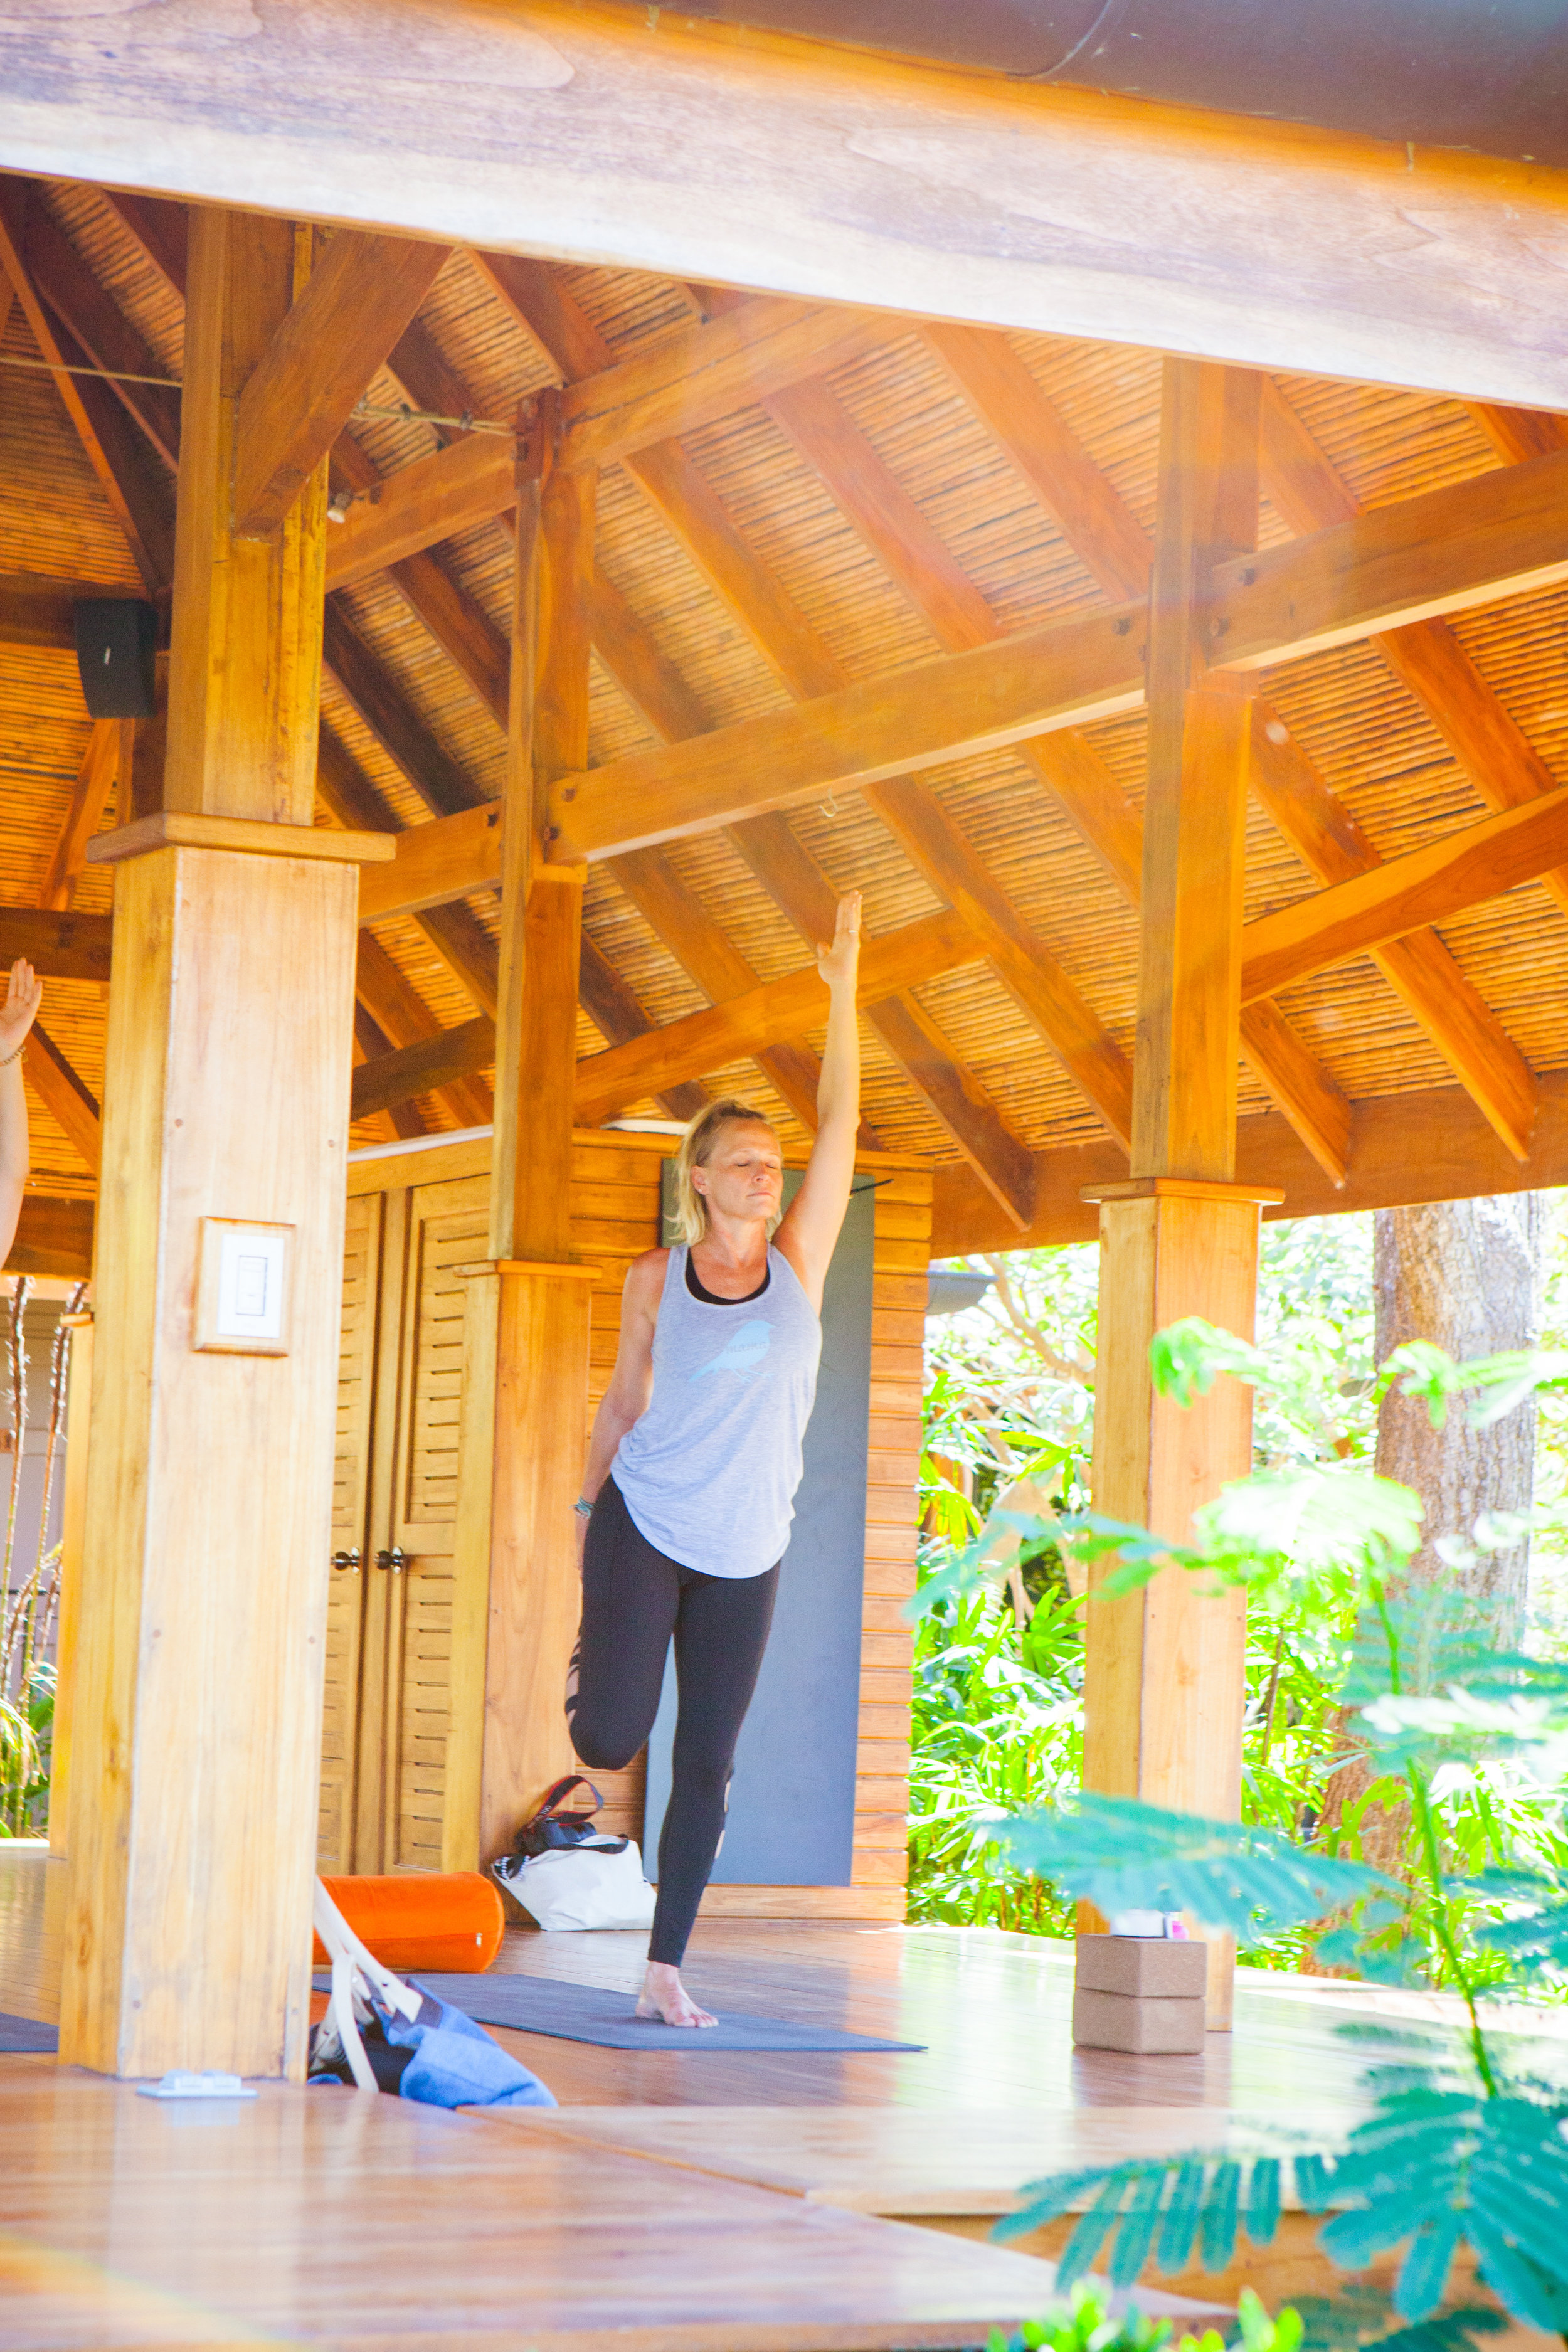 In February of 2018 I went to Costa Rica with 10 women I had never met before with RACHAEL!! To say that this experience changed my life is an understatement. My soul is absolutely on fire from this and I feel like I am finally living my life's purpose. The yoga was personal, the meditation was peaceful and the workshops were eye opening and life changing. I've met life long friends who will always be my cheerleaders. I plan to go again. And again. And again!! You should too!!!